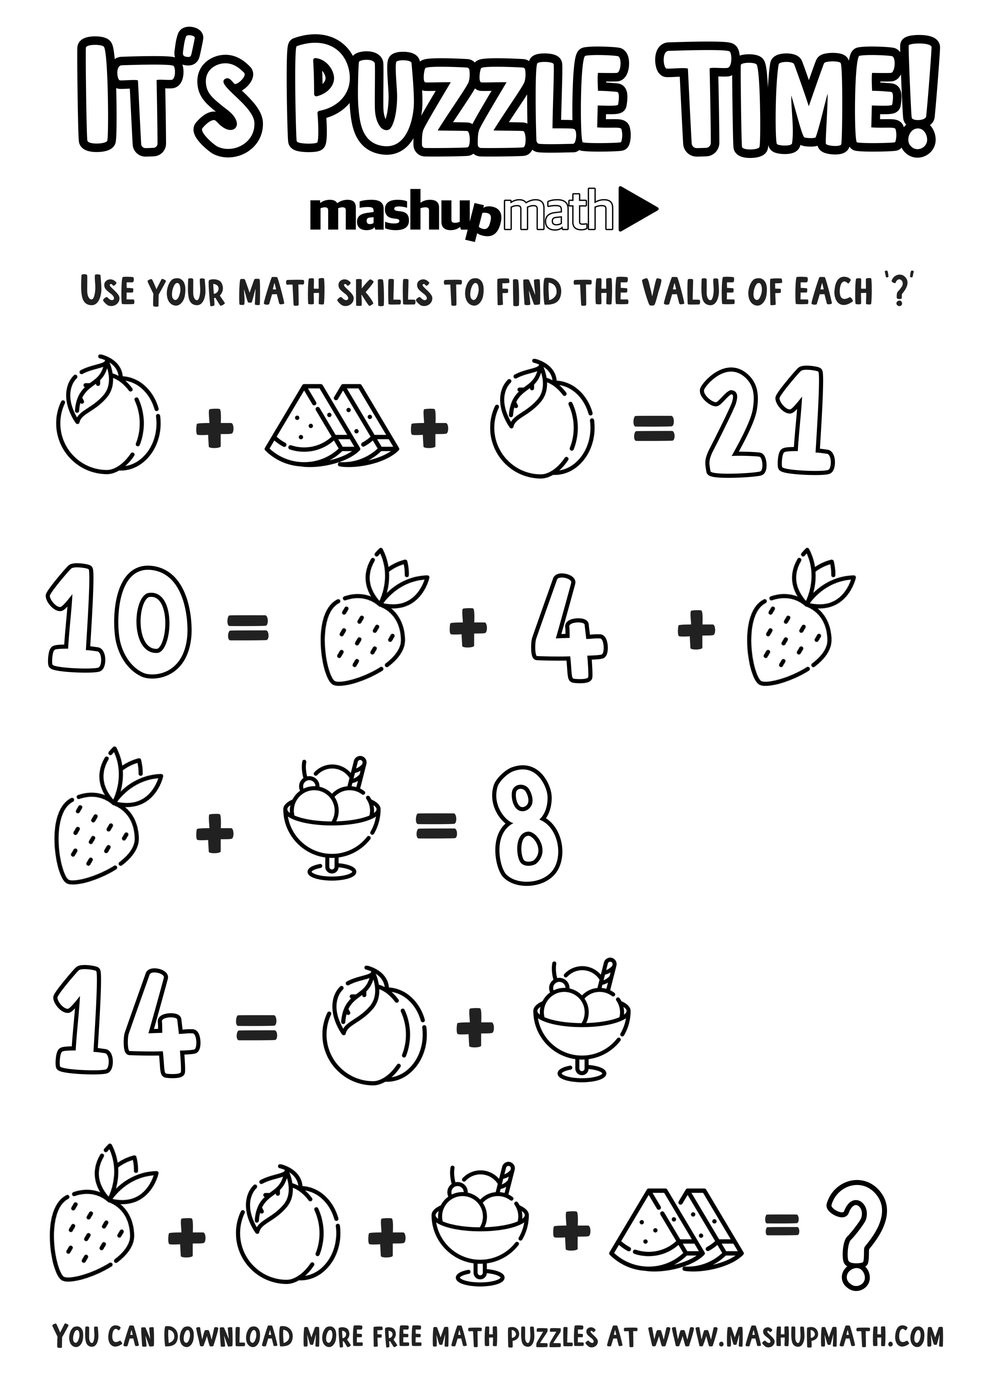 6th Grade Math Puzzles Pdf Free Math Coloring Worksheets for 5th and 6th Grade — Mashup